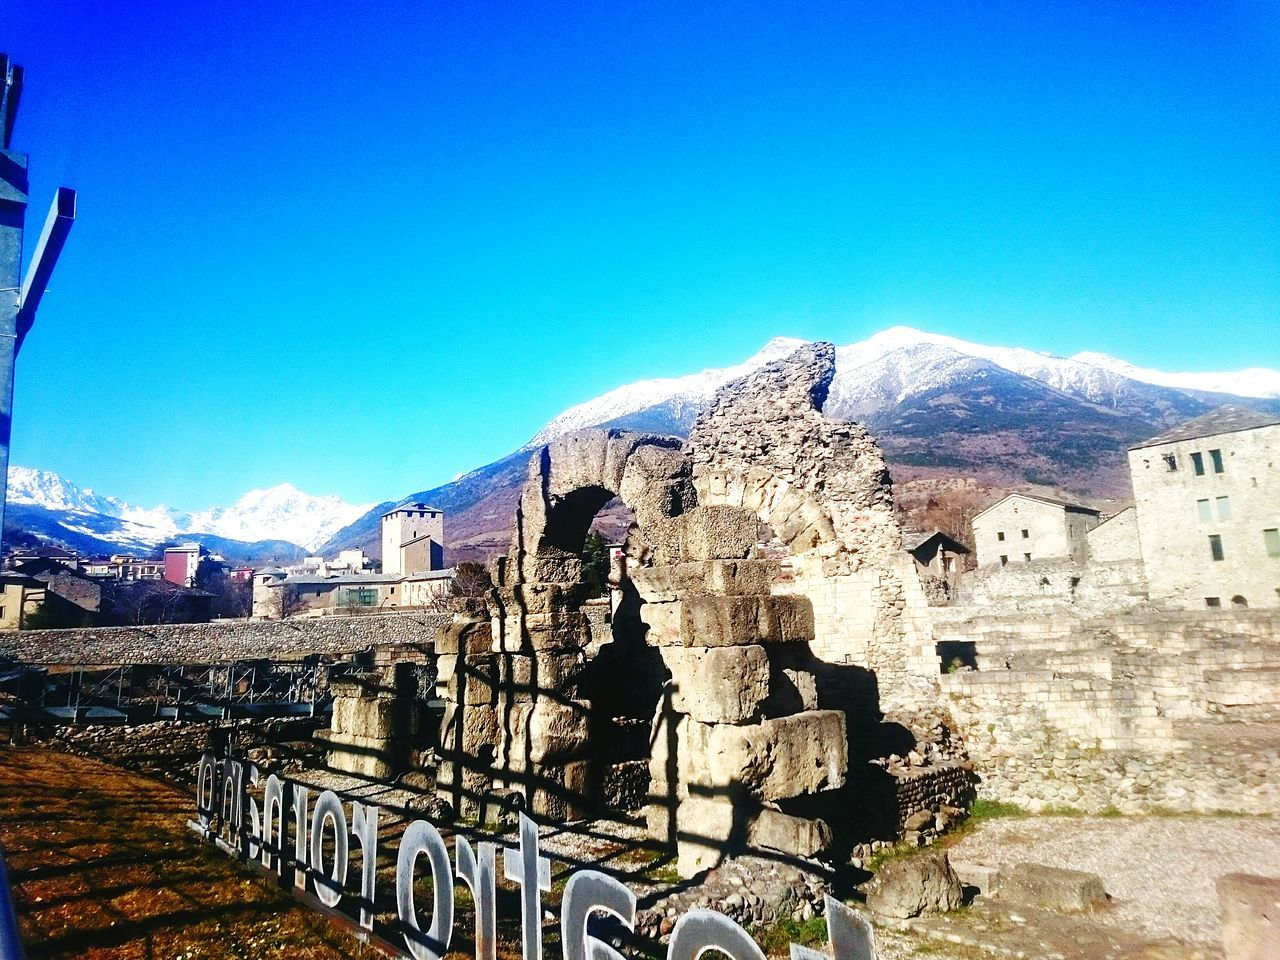 Sky Outdoors Architecture No People Day My2016 My Year My View Life Is A Journey Italy🇮🇹 Aosta Alps Alpine Roman Ruins Historical Buildings History Through The Lens